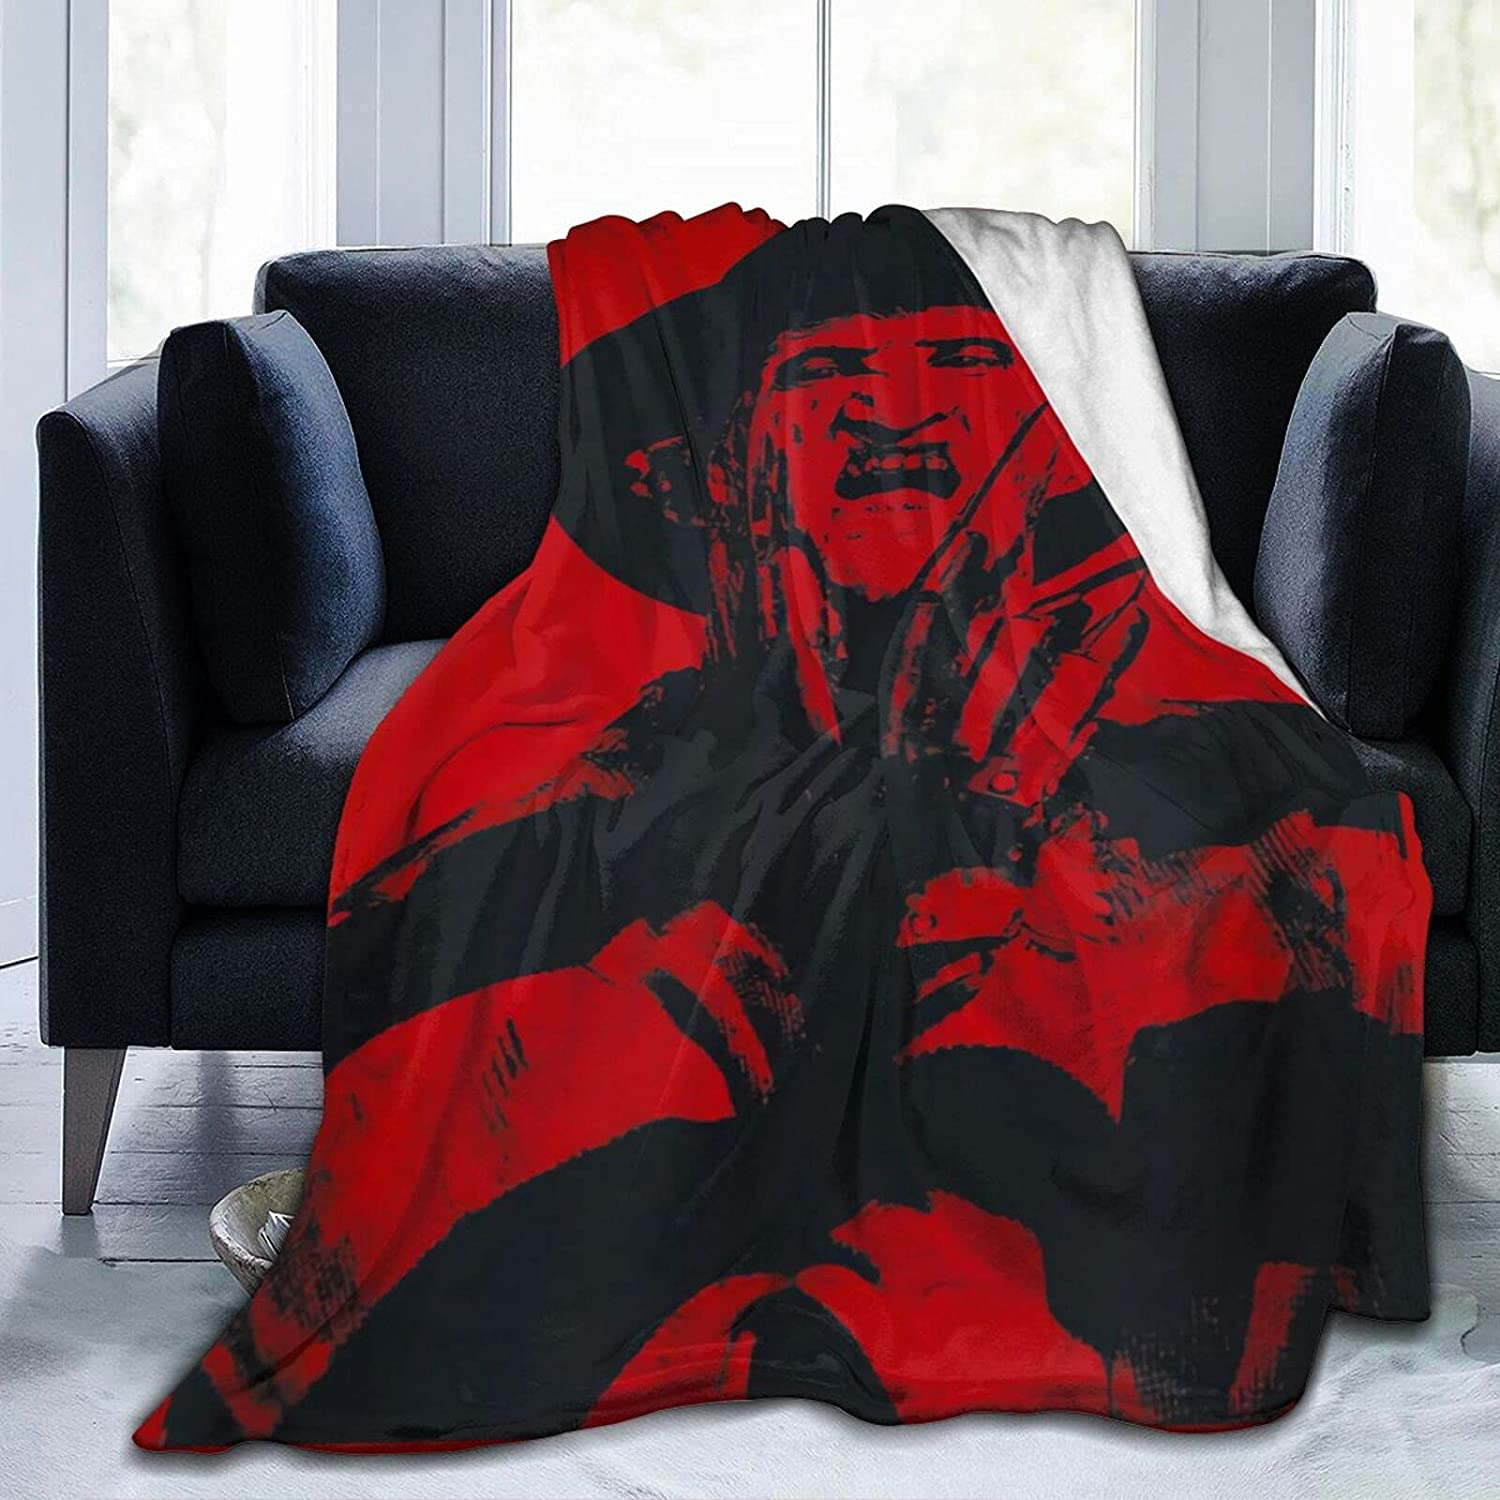 A Nightmare On Opening large release sale Elm Street Soft overseas Blanket Warm and Full Throw Size